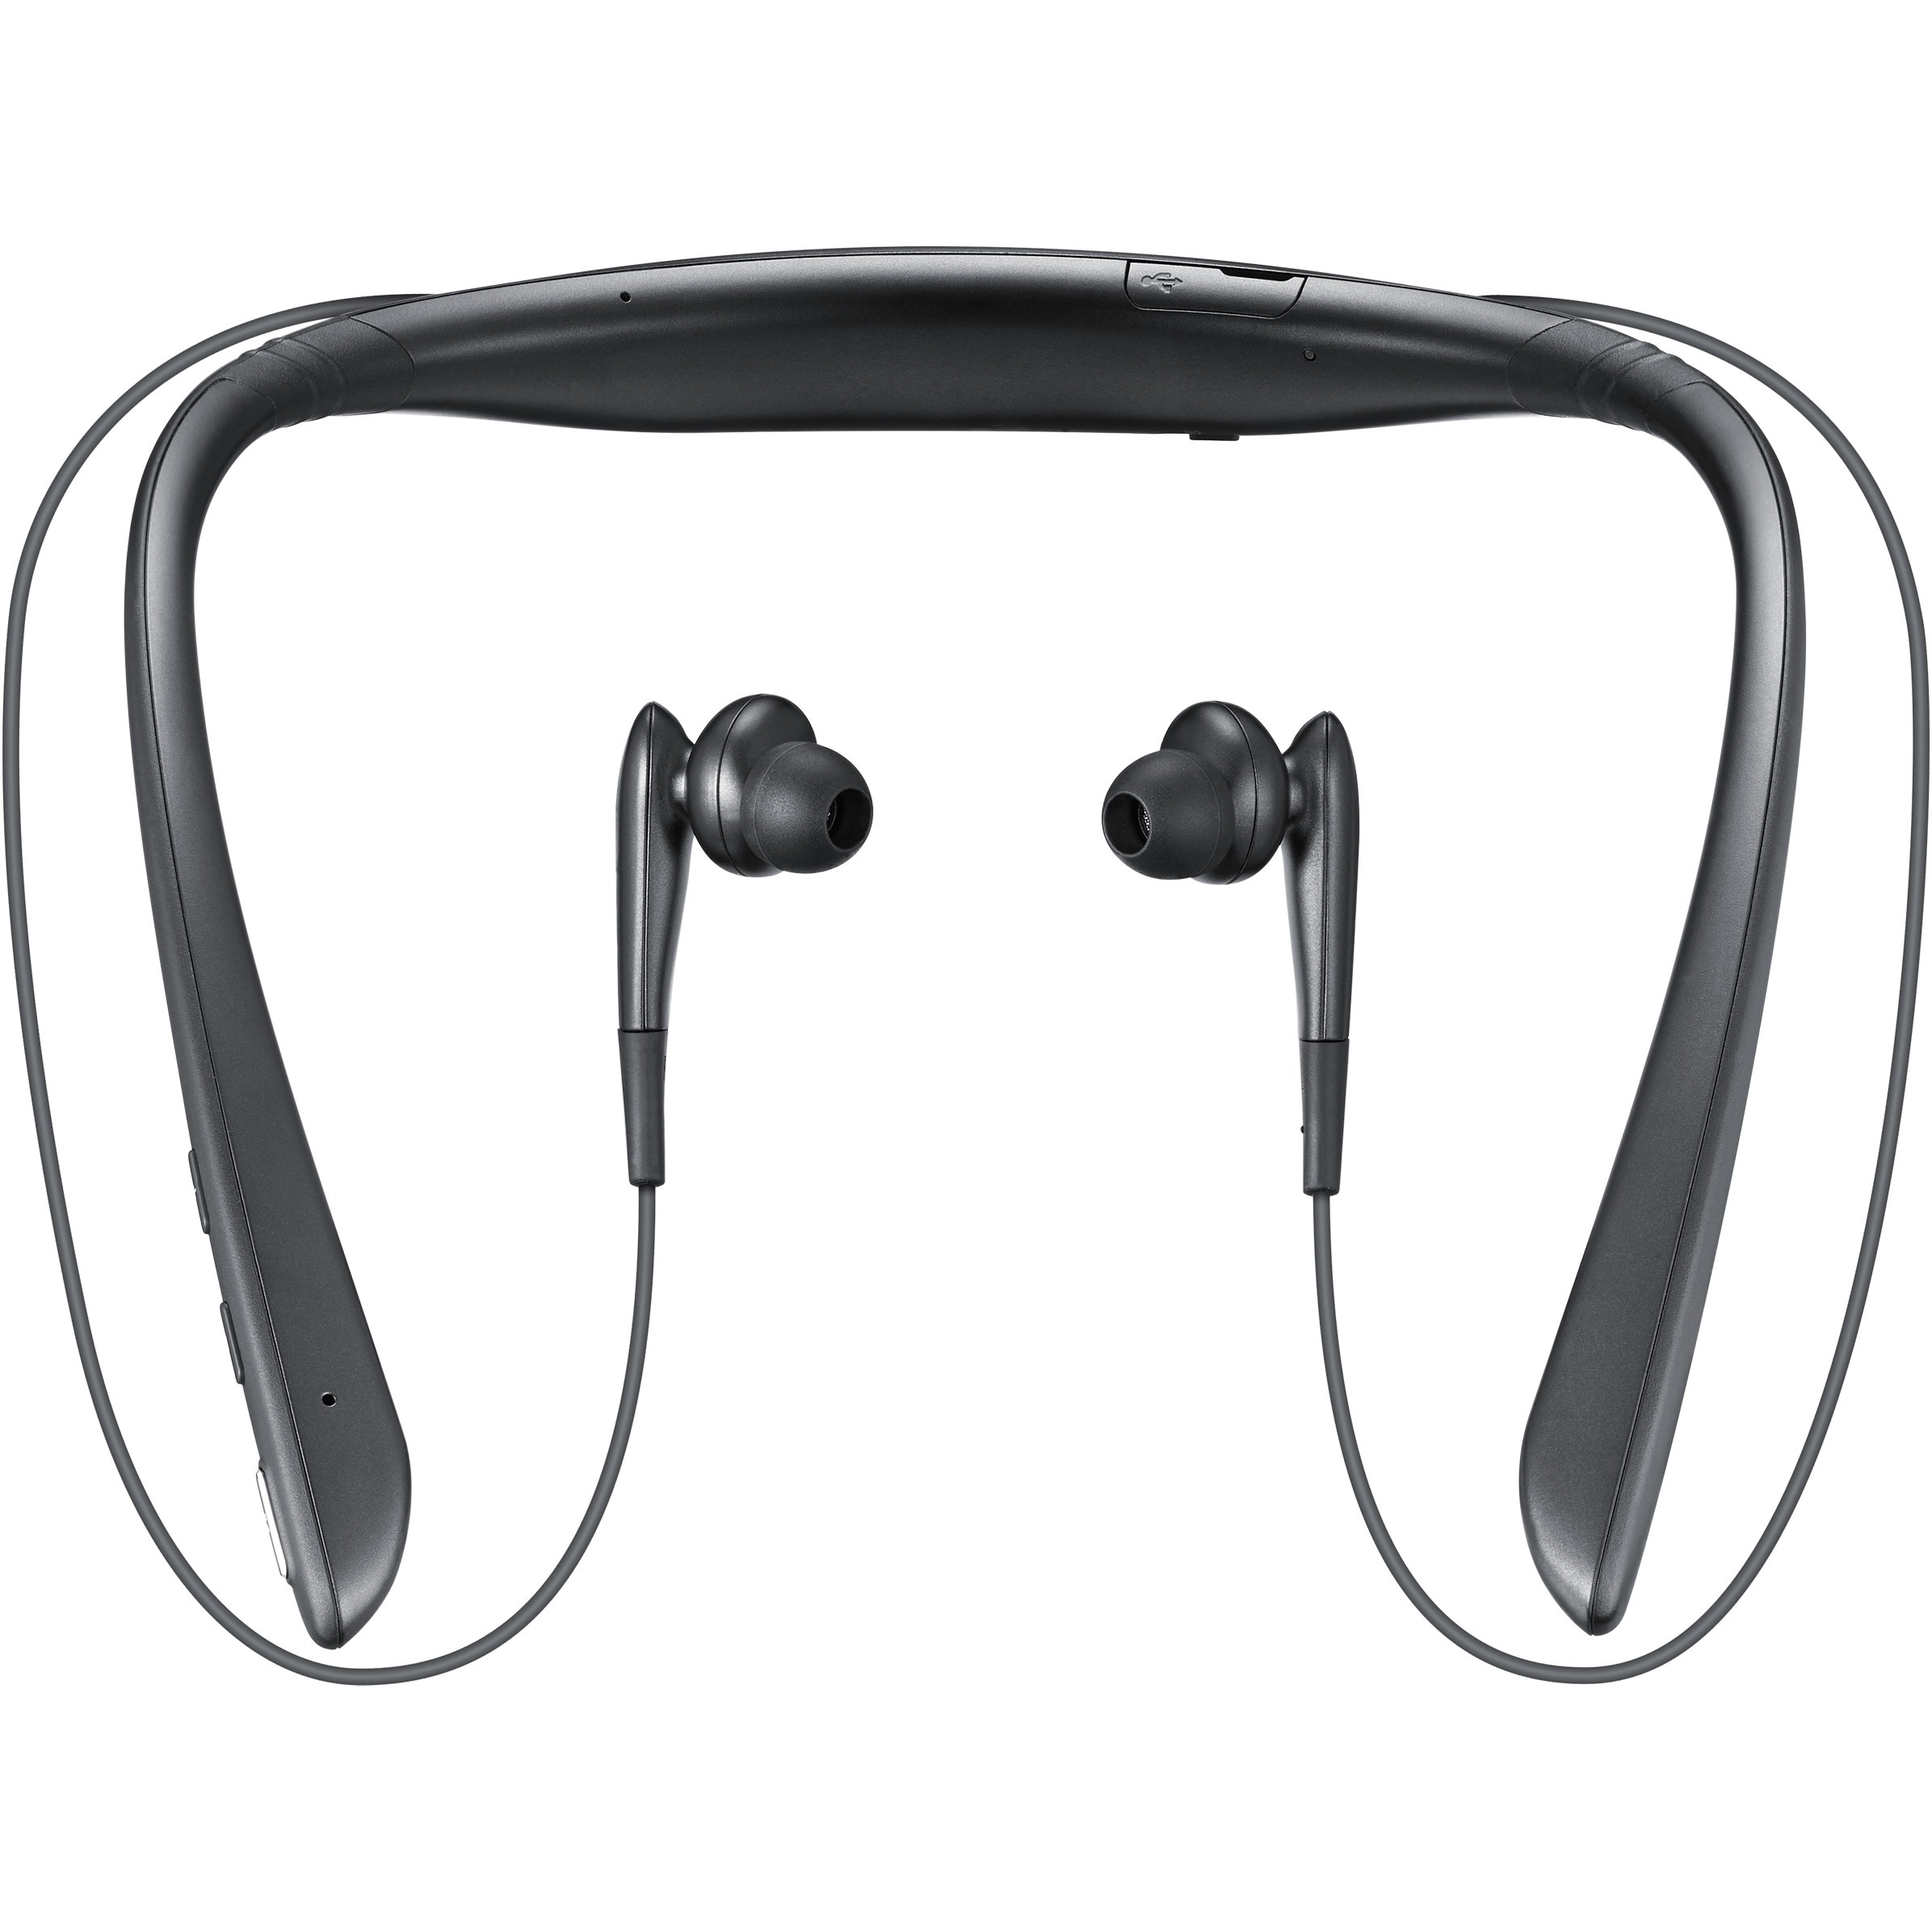 b419f677bc0 Samsung Level U PRO Wireless Headphones - Stereo - Black - Wireless -  Bluetooth - Behind